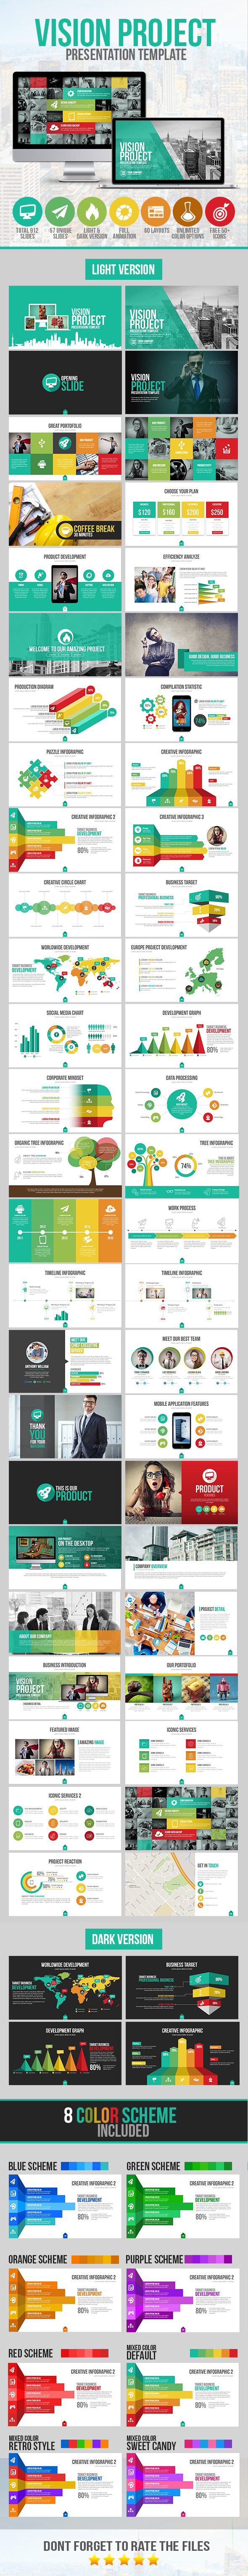 vision project presentation templatebrandearth | graphicriver, Powerpoint templates